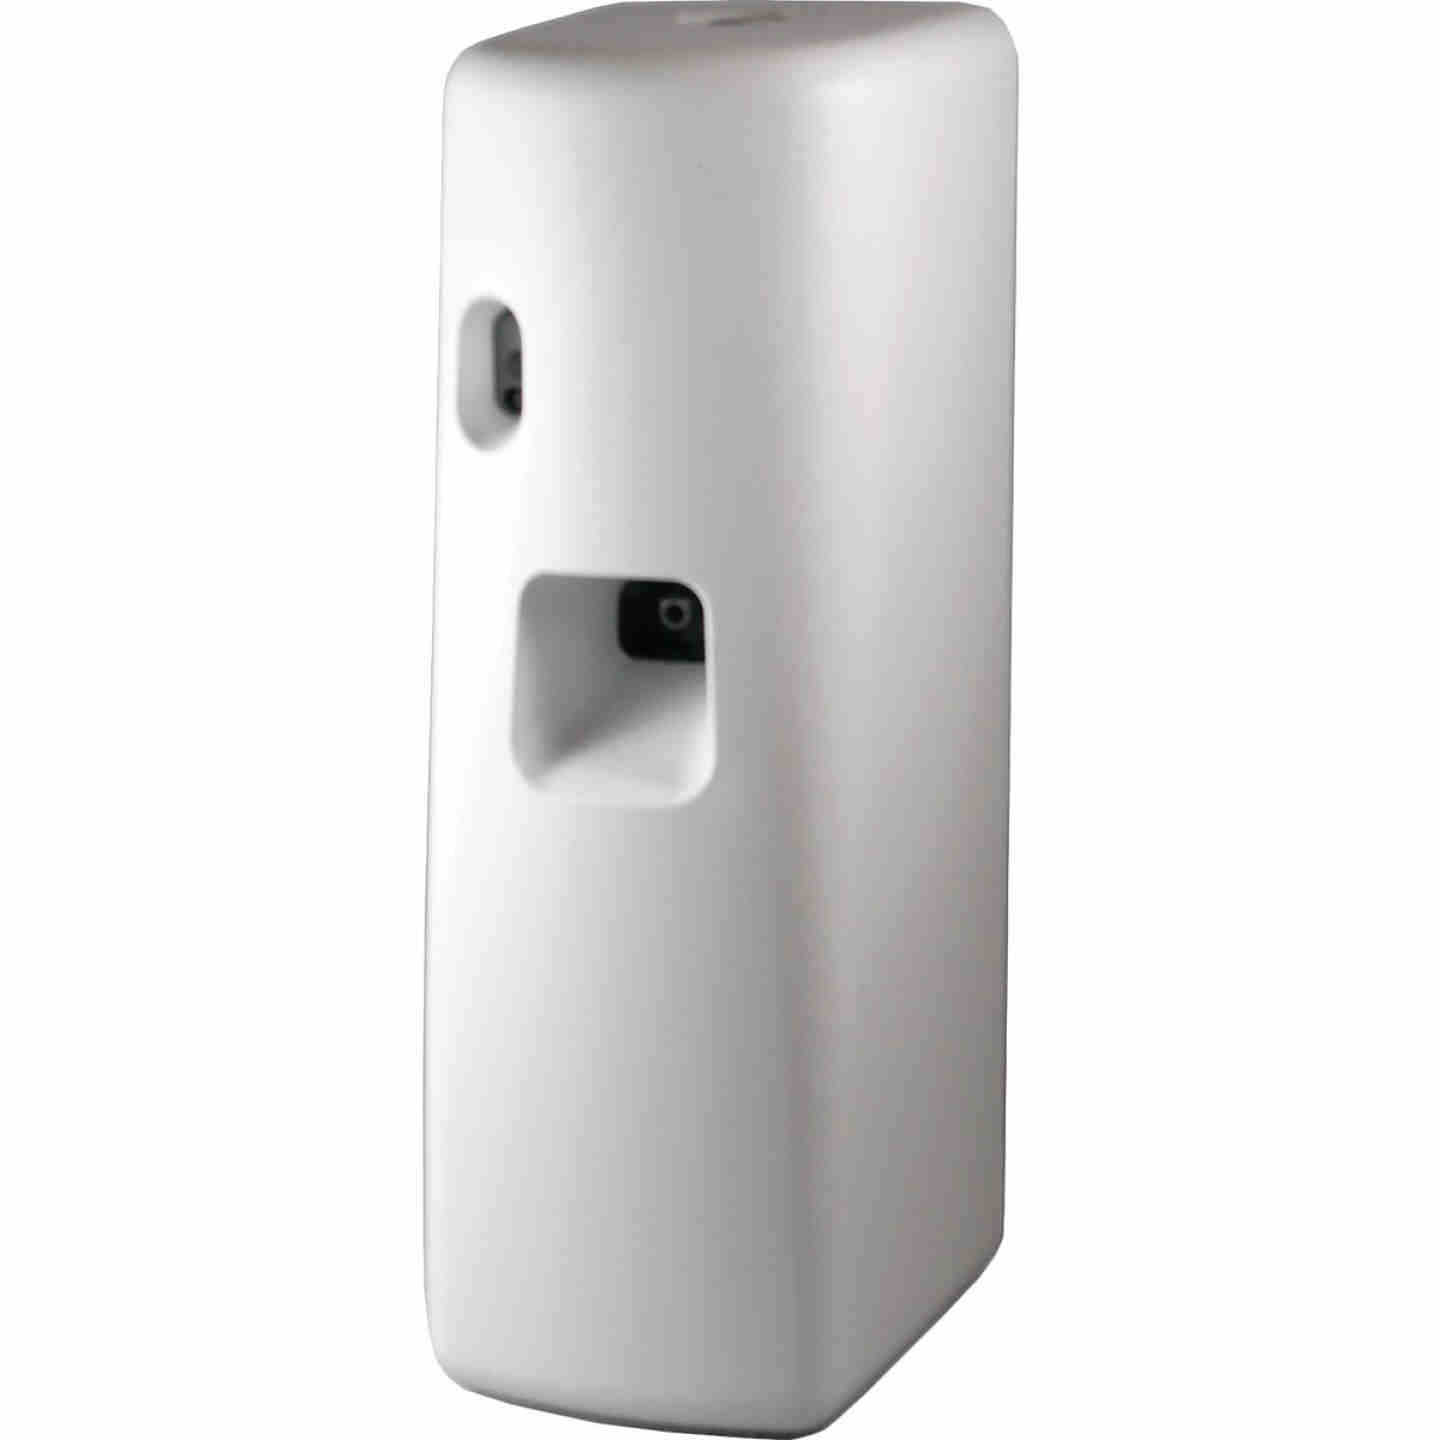 Odor Assassin Dispensing Cabinet with Light Sensor Image 1